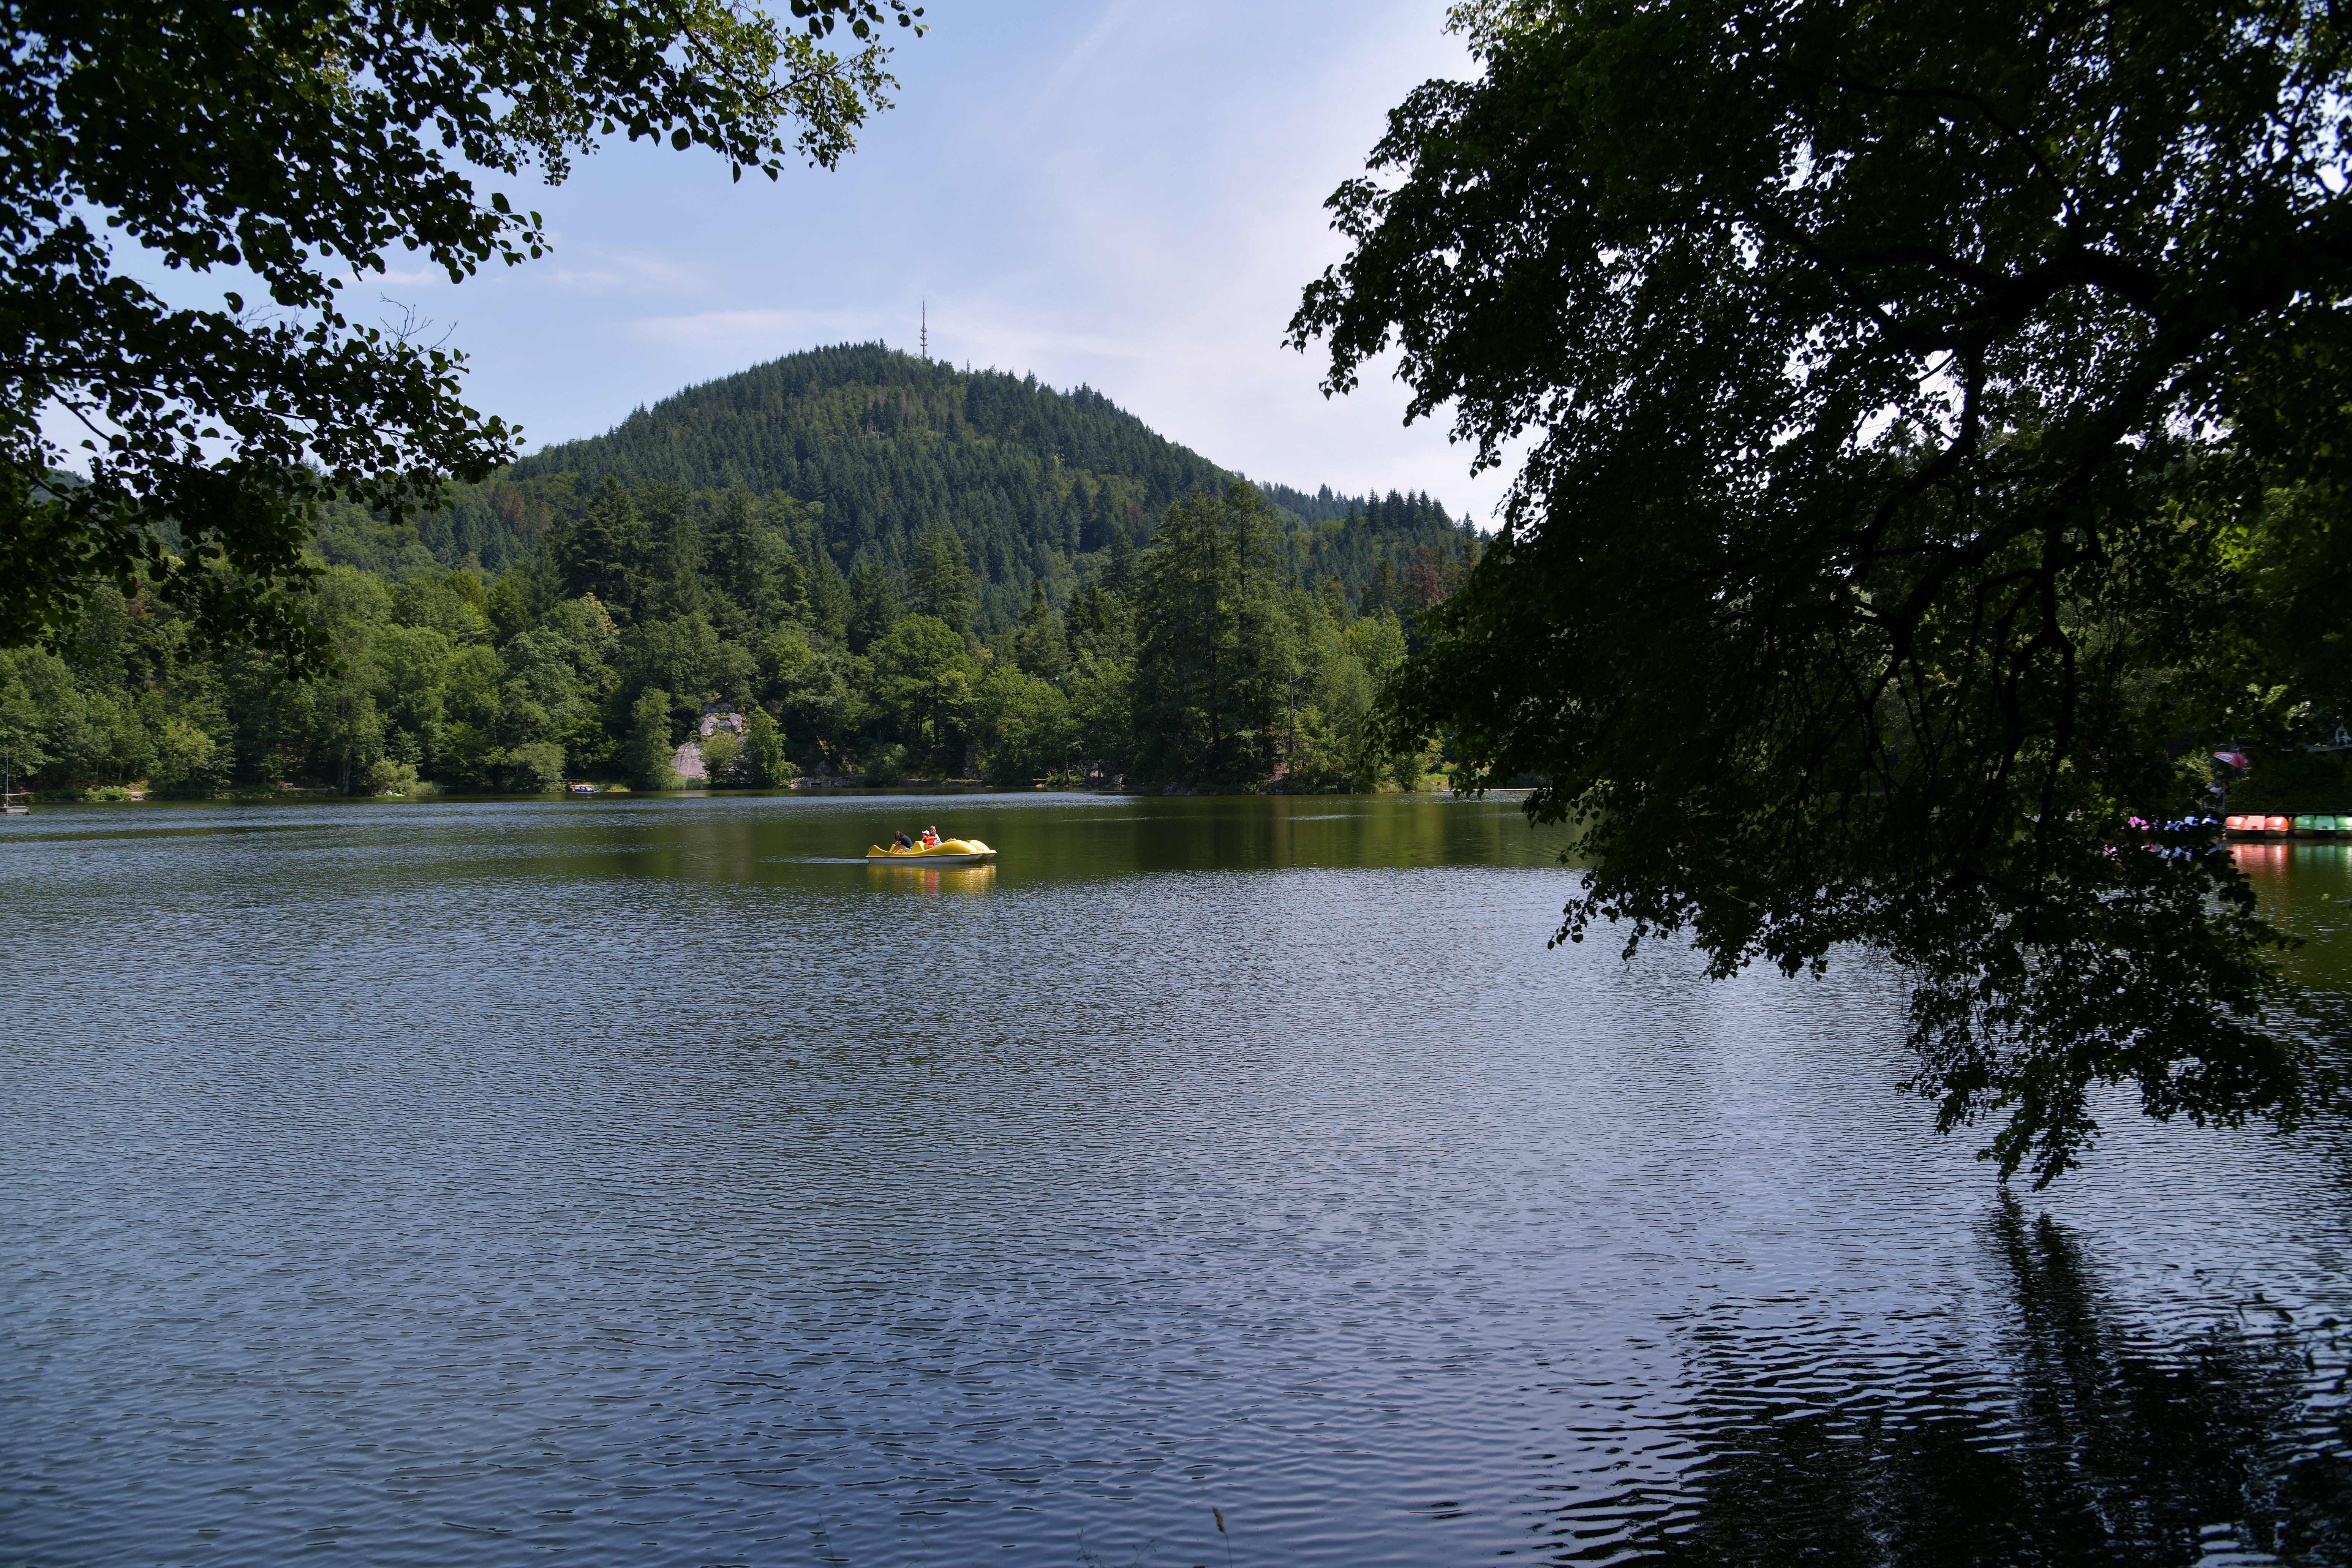 From the Bergsee to high in the forest